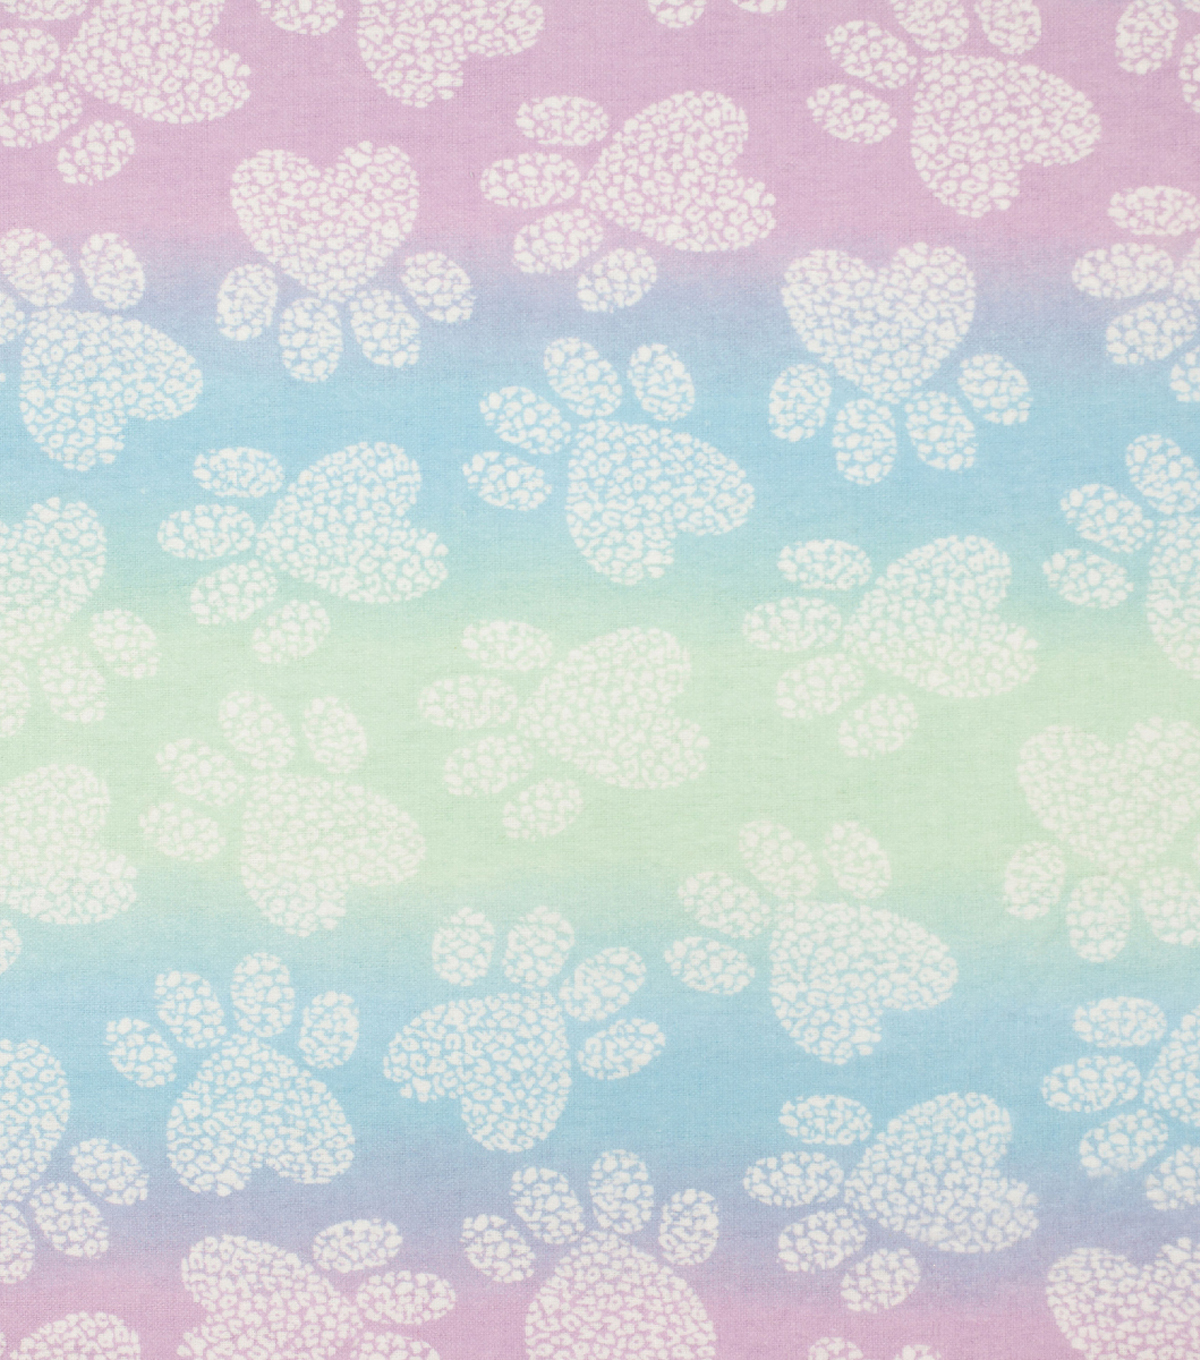 Super Snuggle Flannel Fabric-Paw Clusters on Pastel Tie Dye